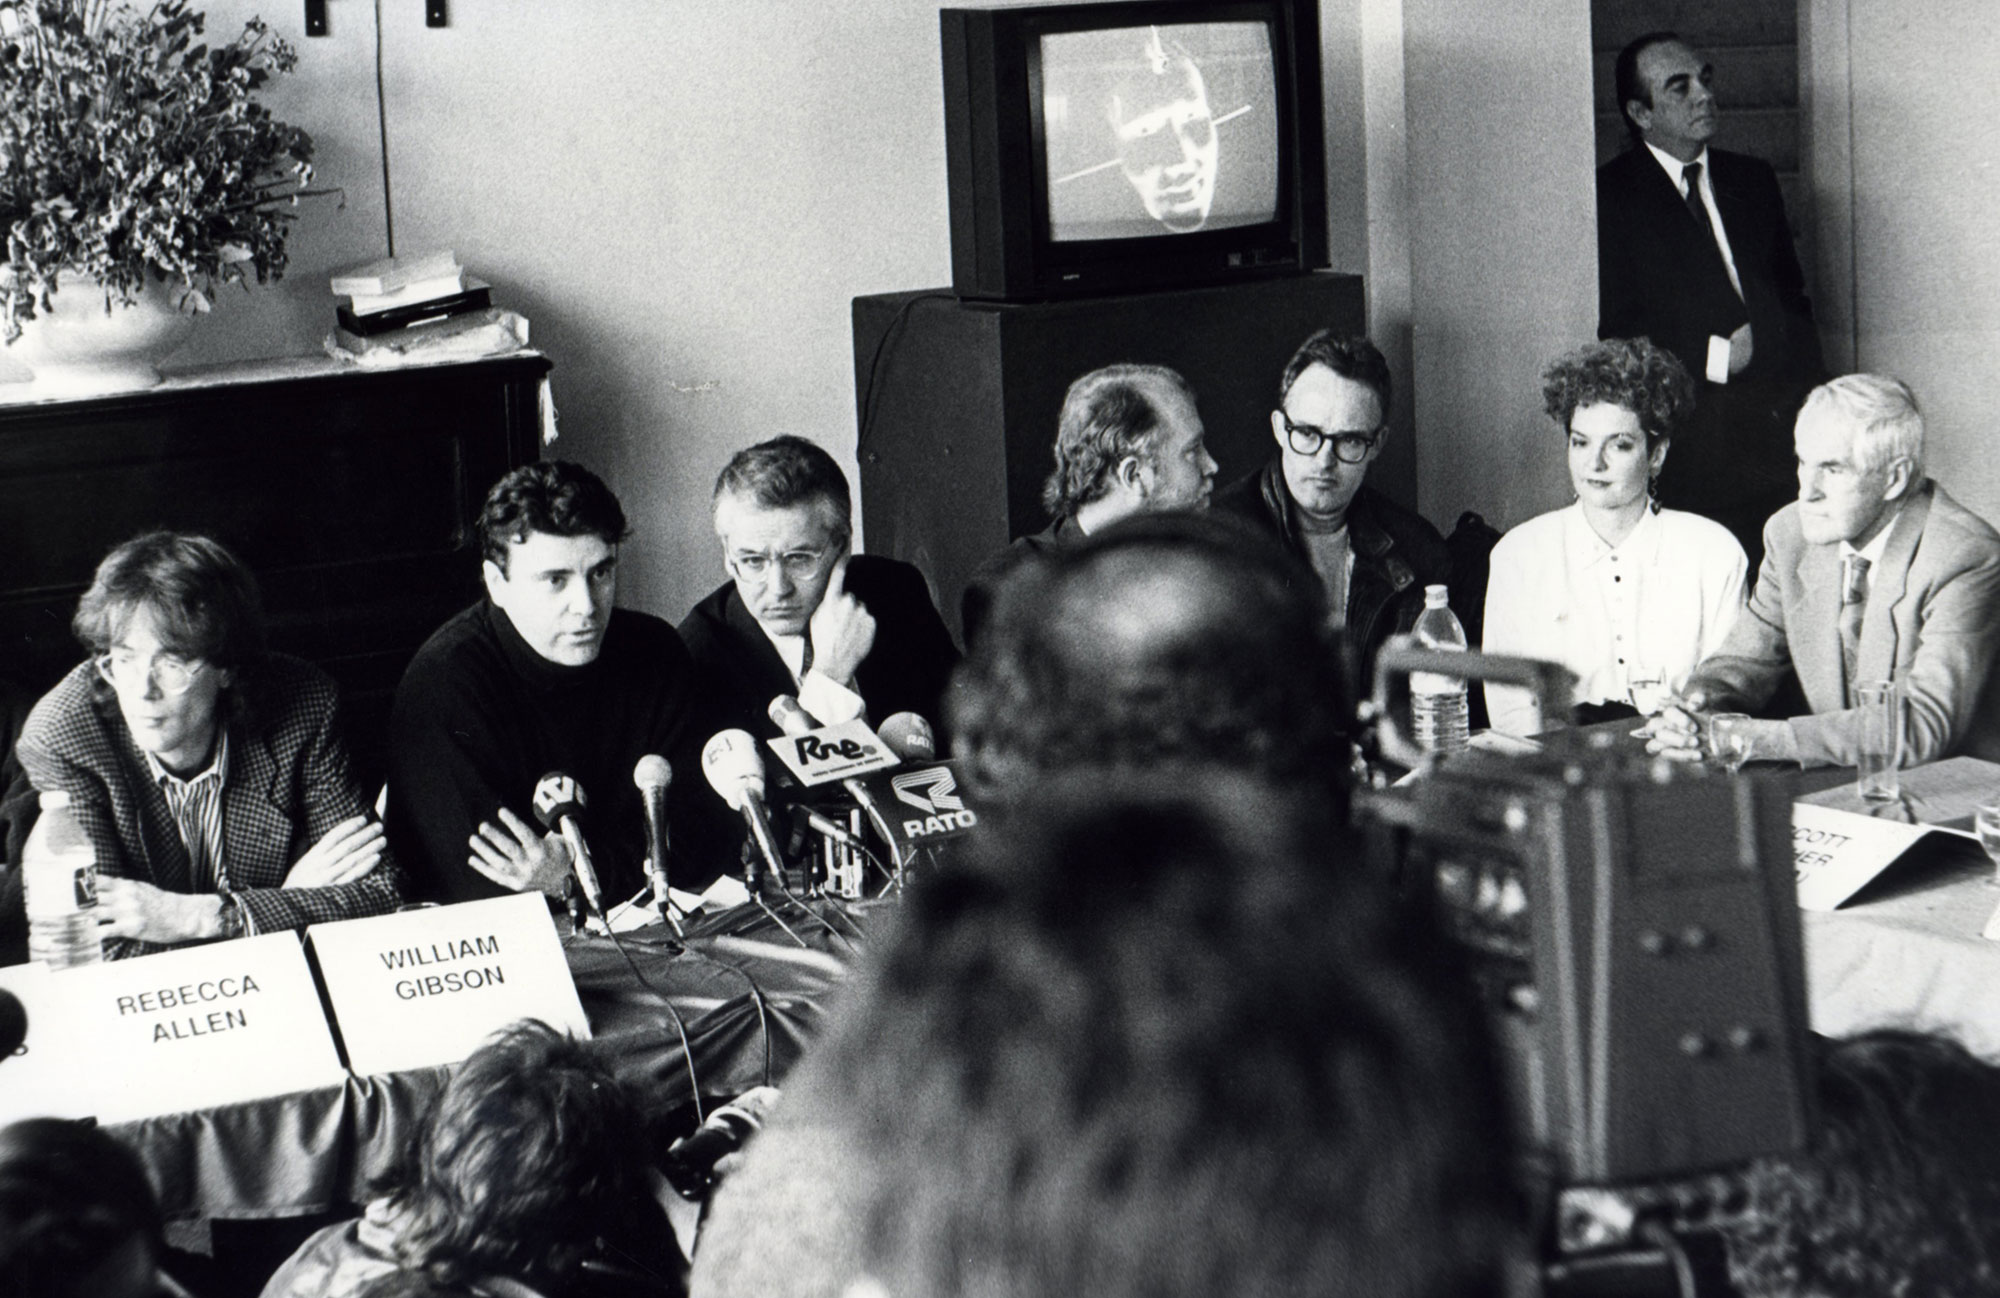 Rueda de Prensa - William Gibson, Montxo algora, Rebecca Allen y Timothy Leary